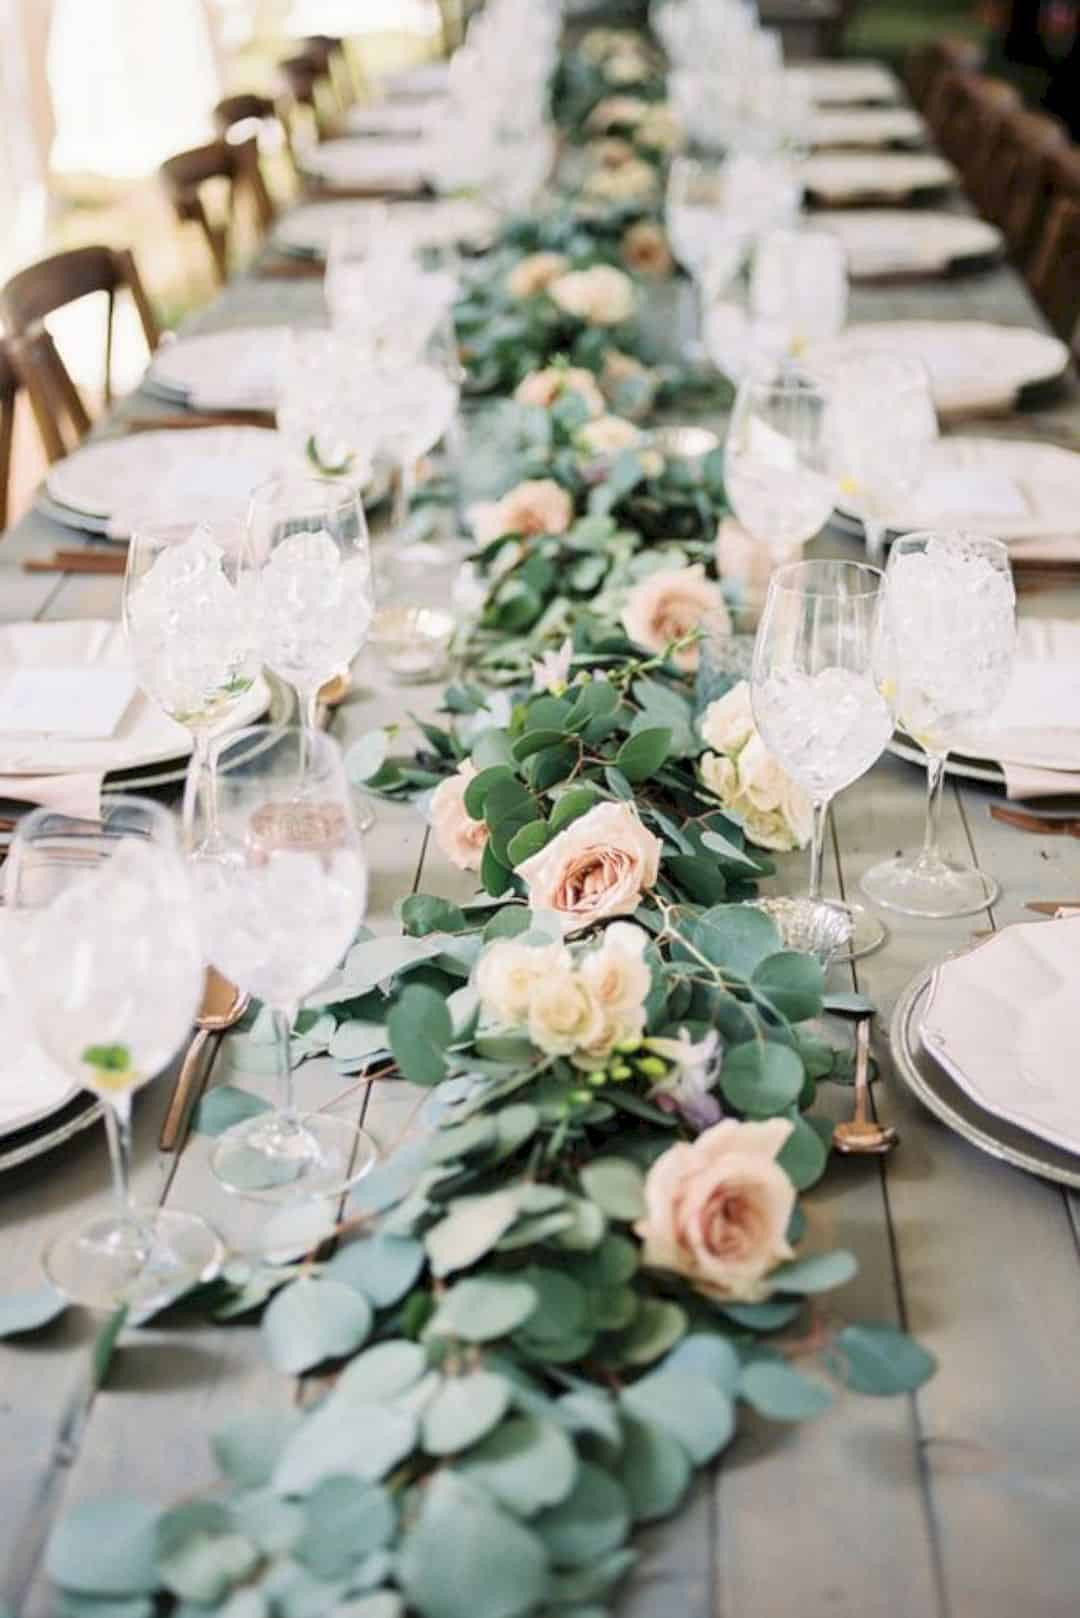 Wedding Table Decorations  17 Adorable Wedding Tables Decorations